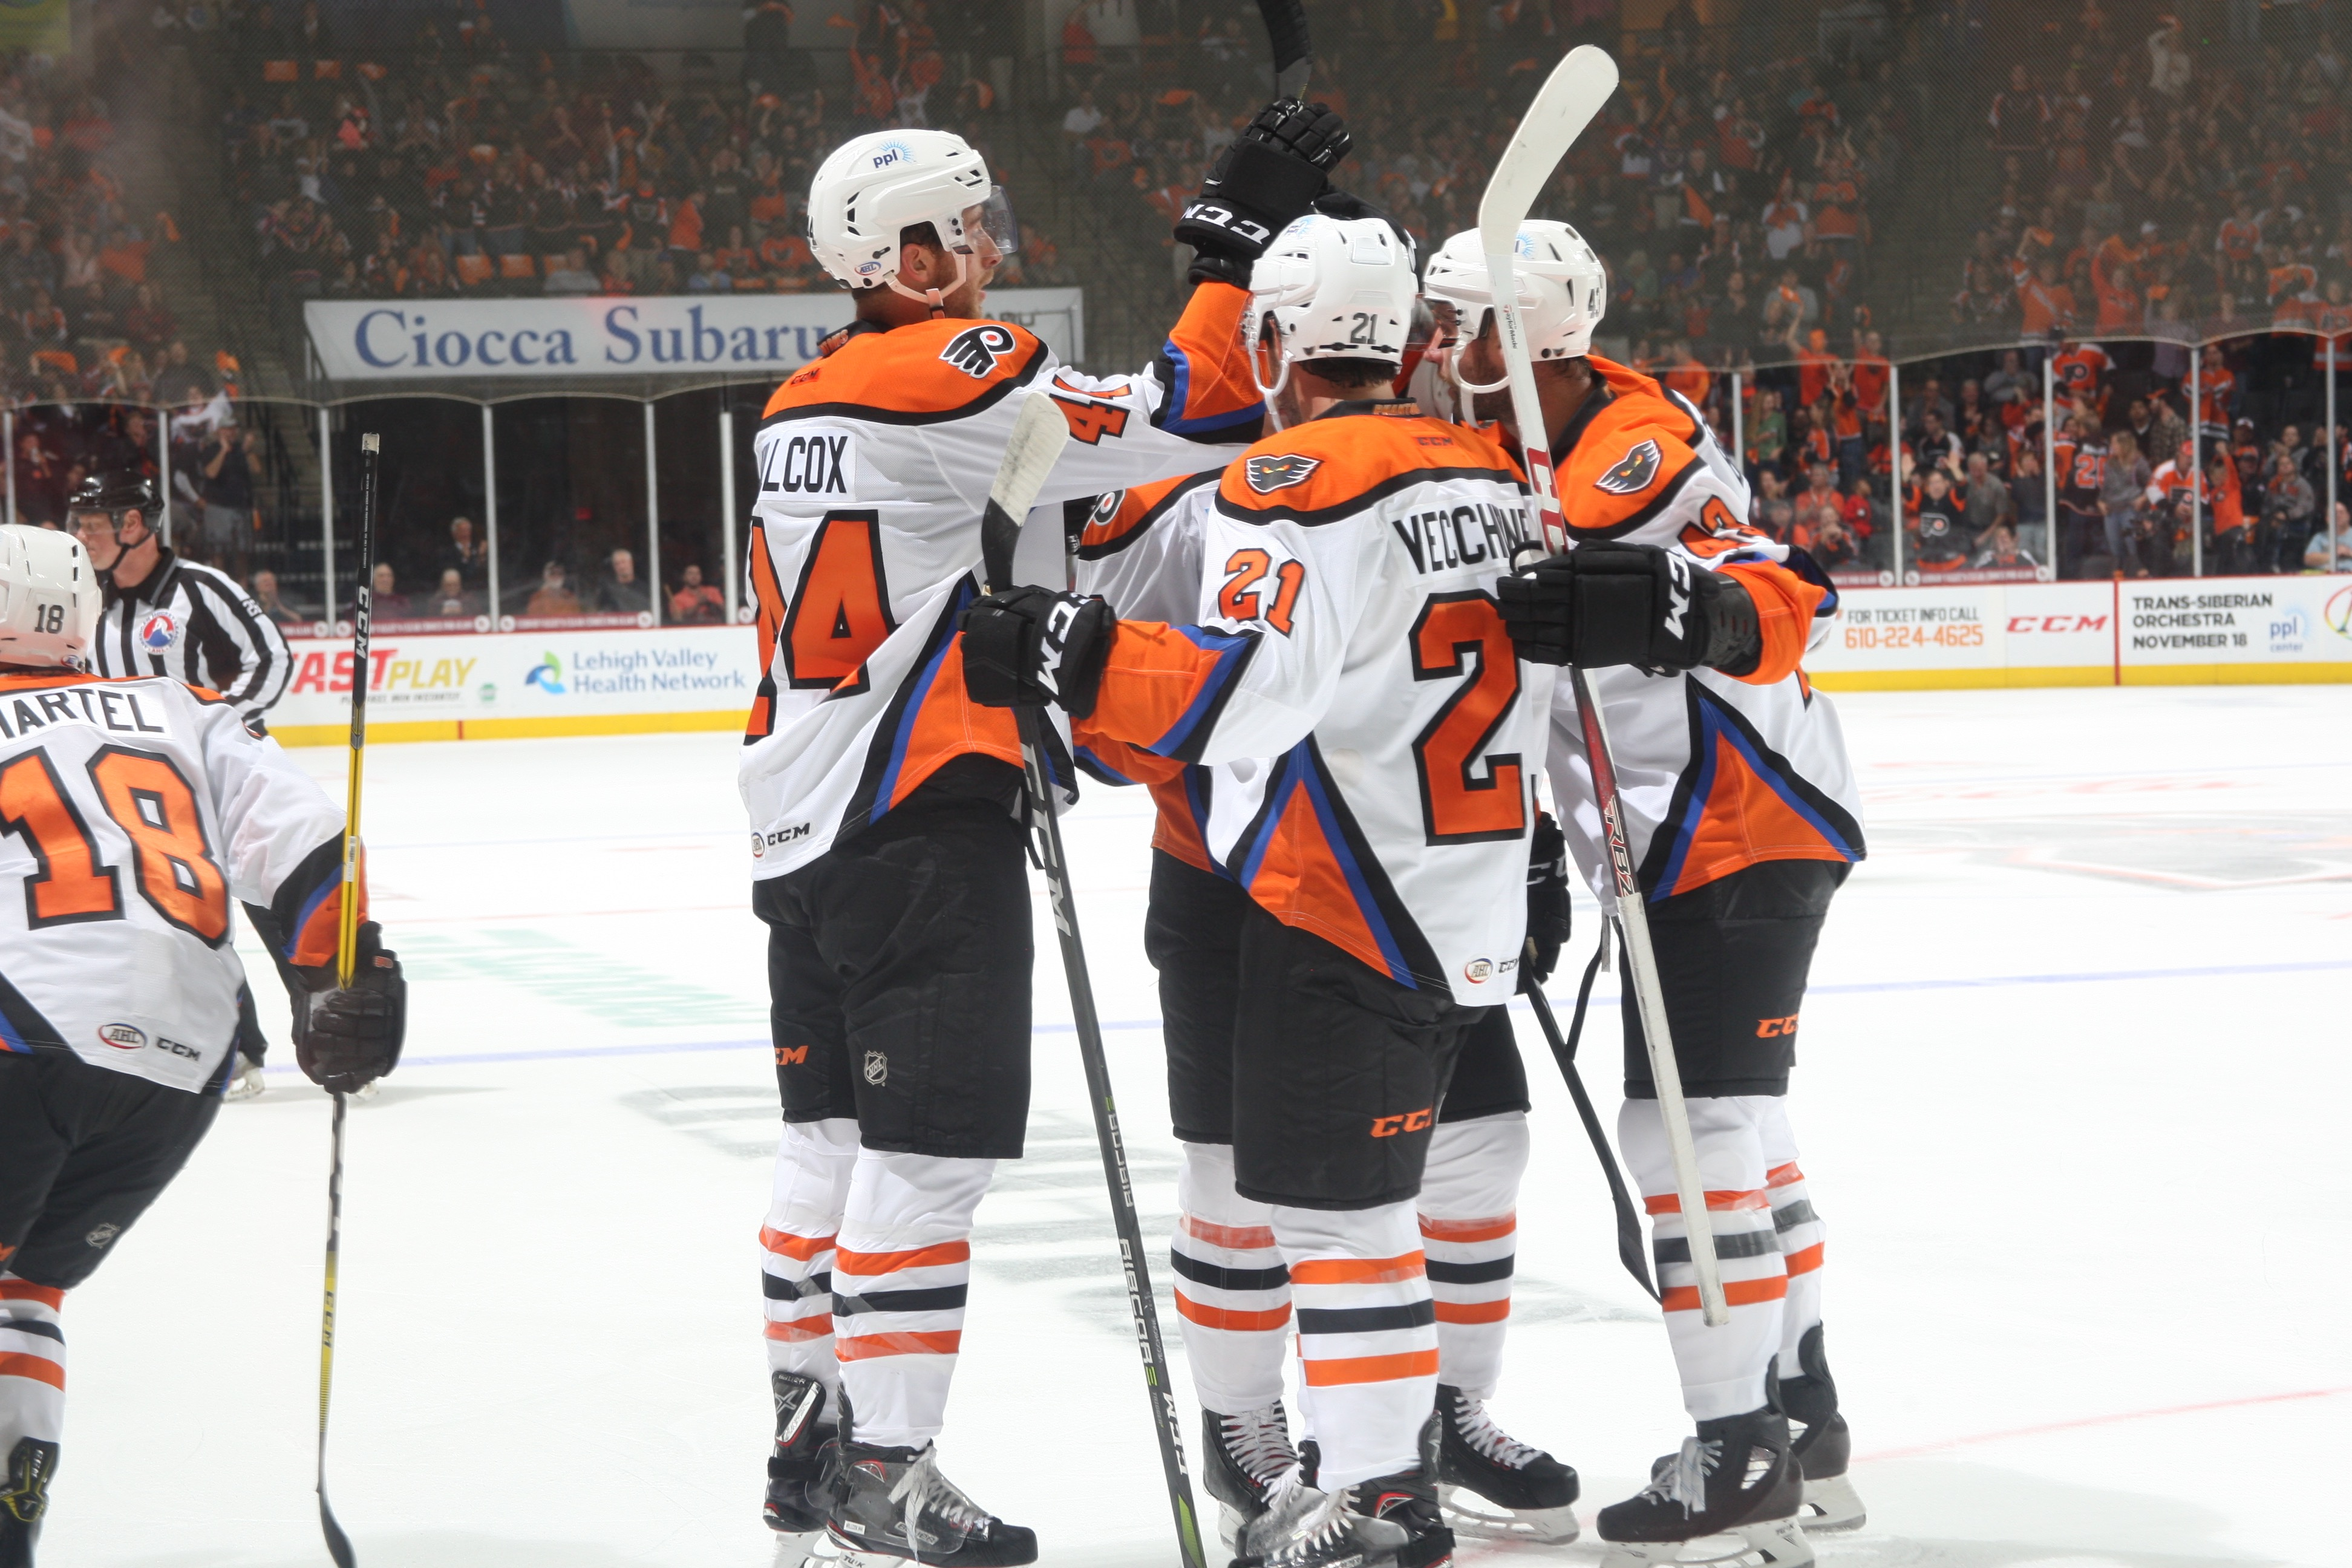 f7f1037e740a2a Martel's Hat Trick Powers Phantoms Opening Night Win - Lehigh Valley ...